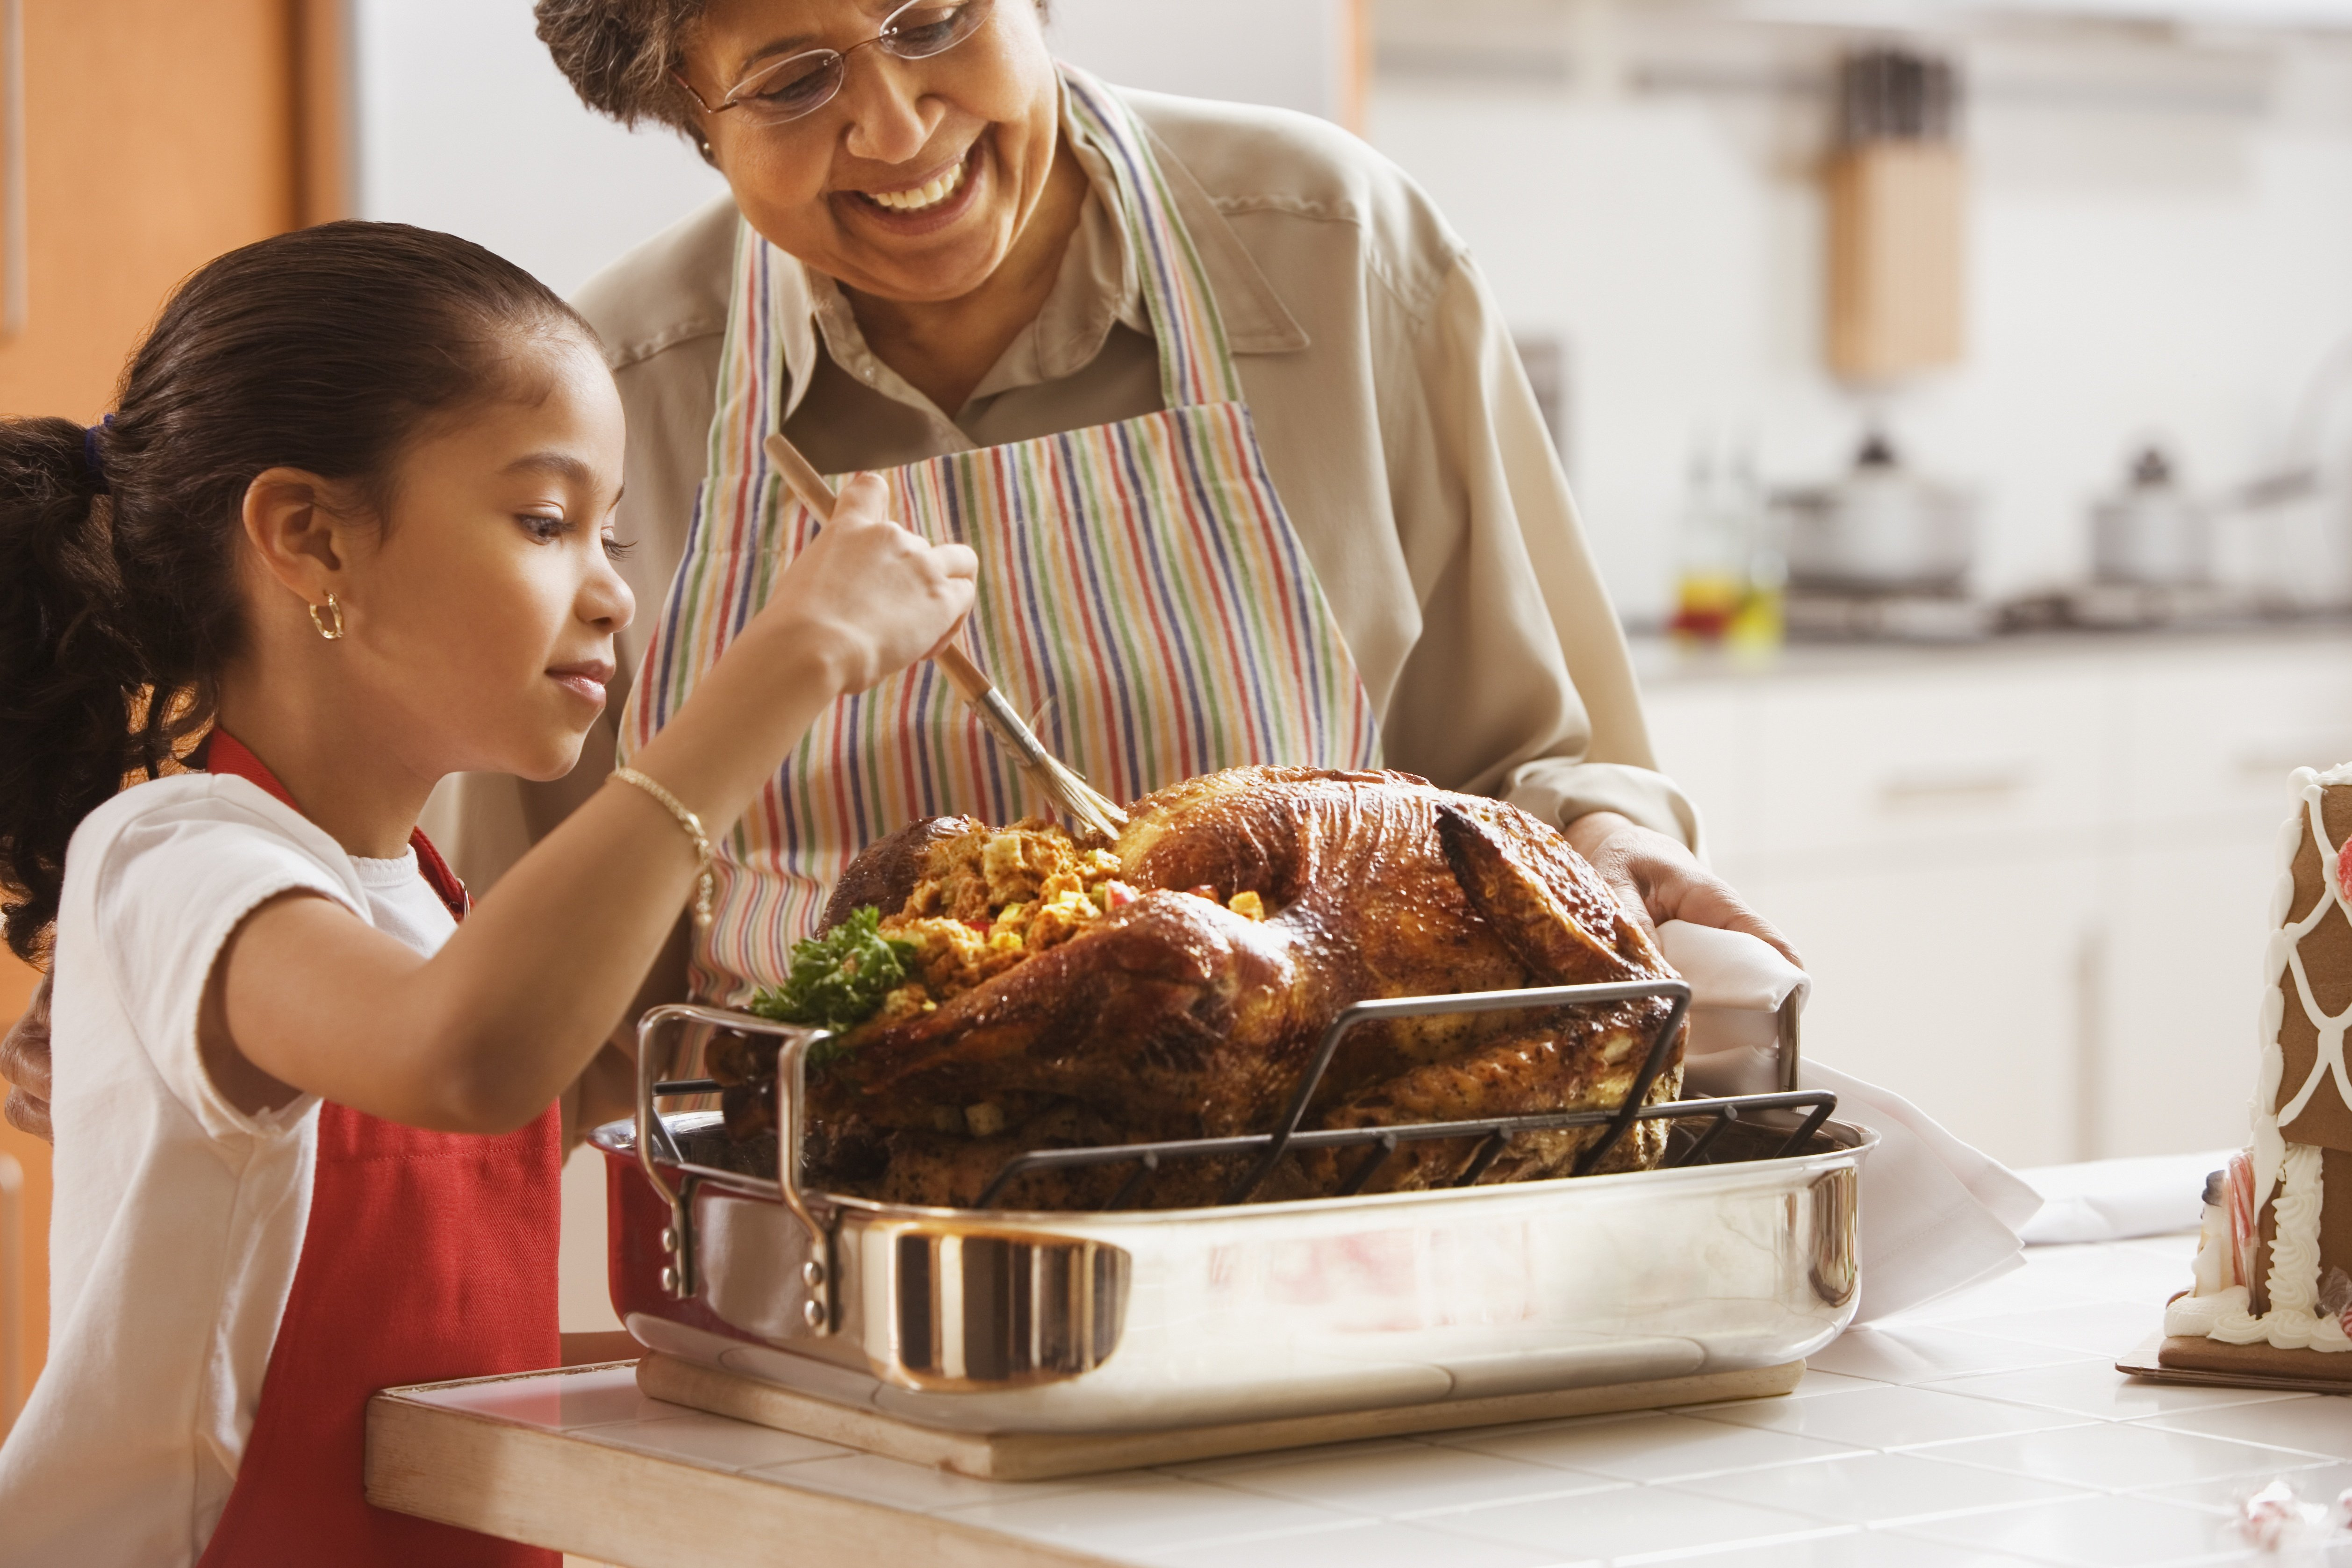 little girl cooking turkey with mom |Photo: Getty Images